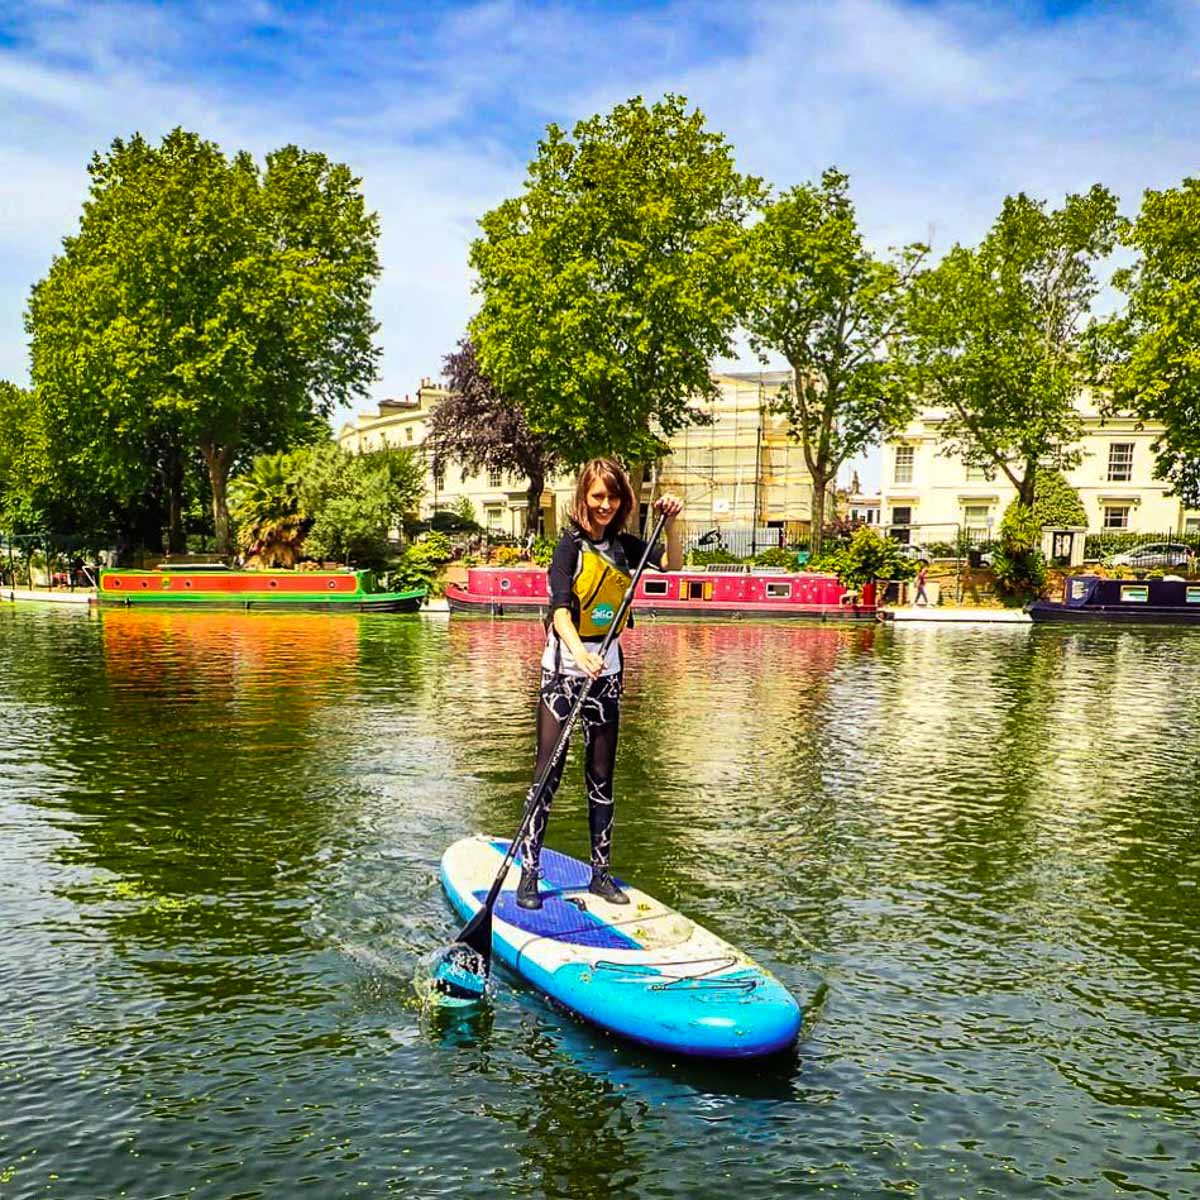 RETURNING PADDLER £26 - • Board and Wetsuit Hire• Guided SUP Tour• Coaching to improve your paddling technique.• Build paddle endurance, great training if you're joining us for a SUP holiday!